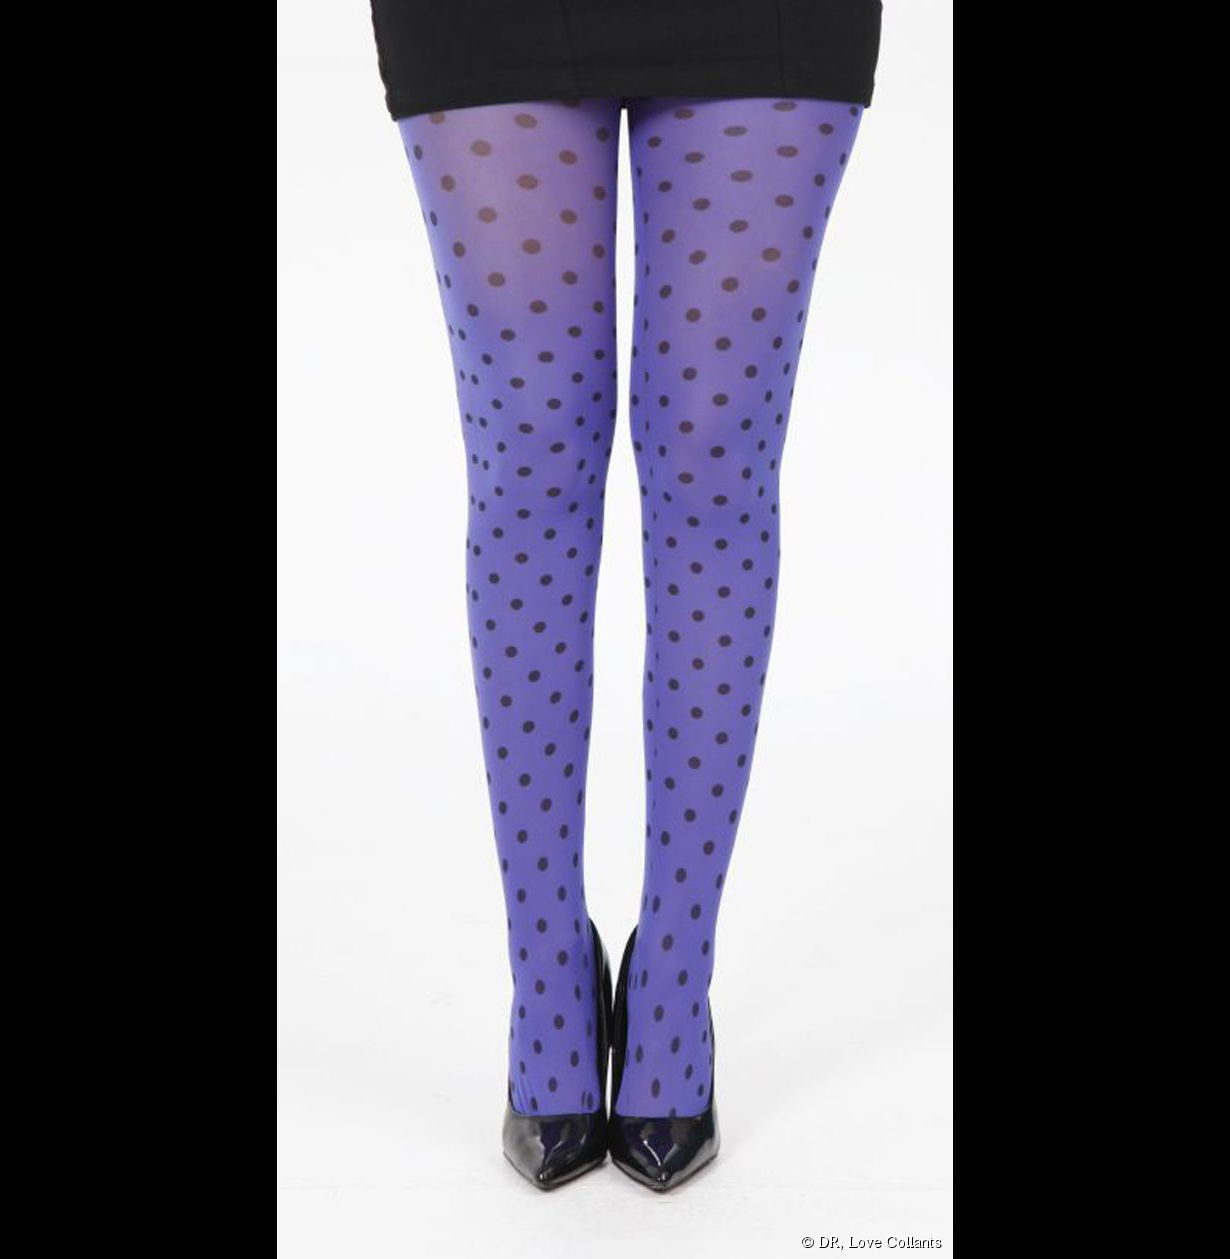 Collants à points Polka violet  - Love Collants (existe en différentes couleurs), 10,2€5